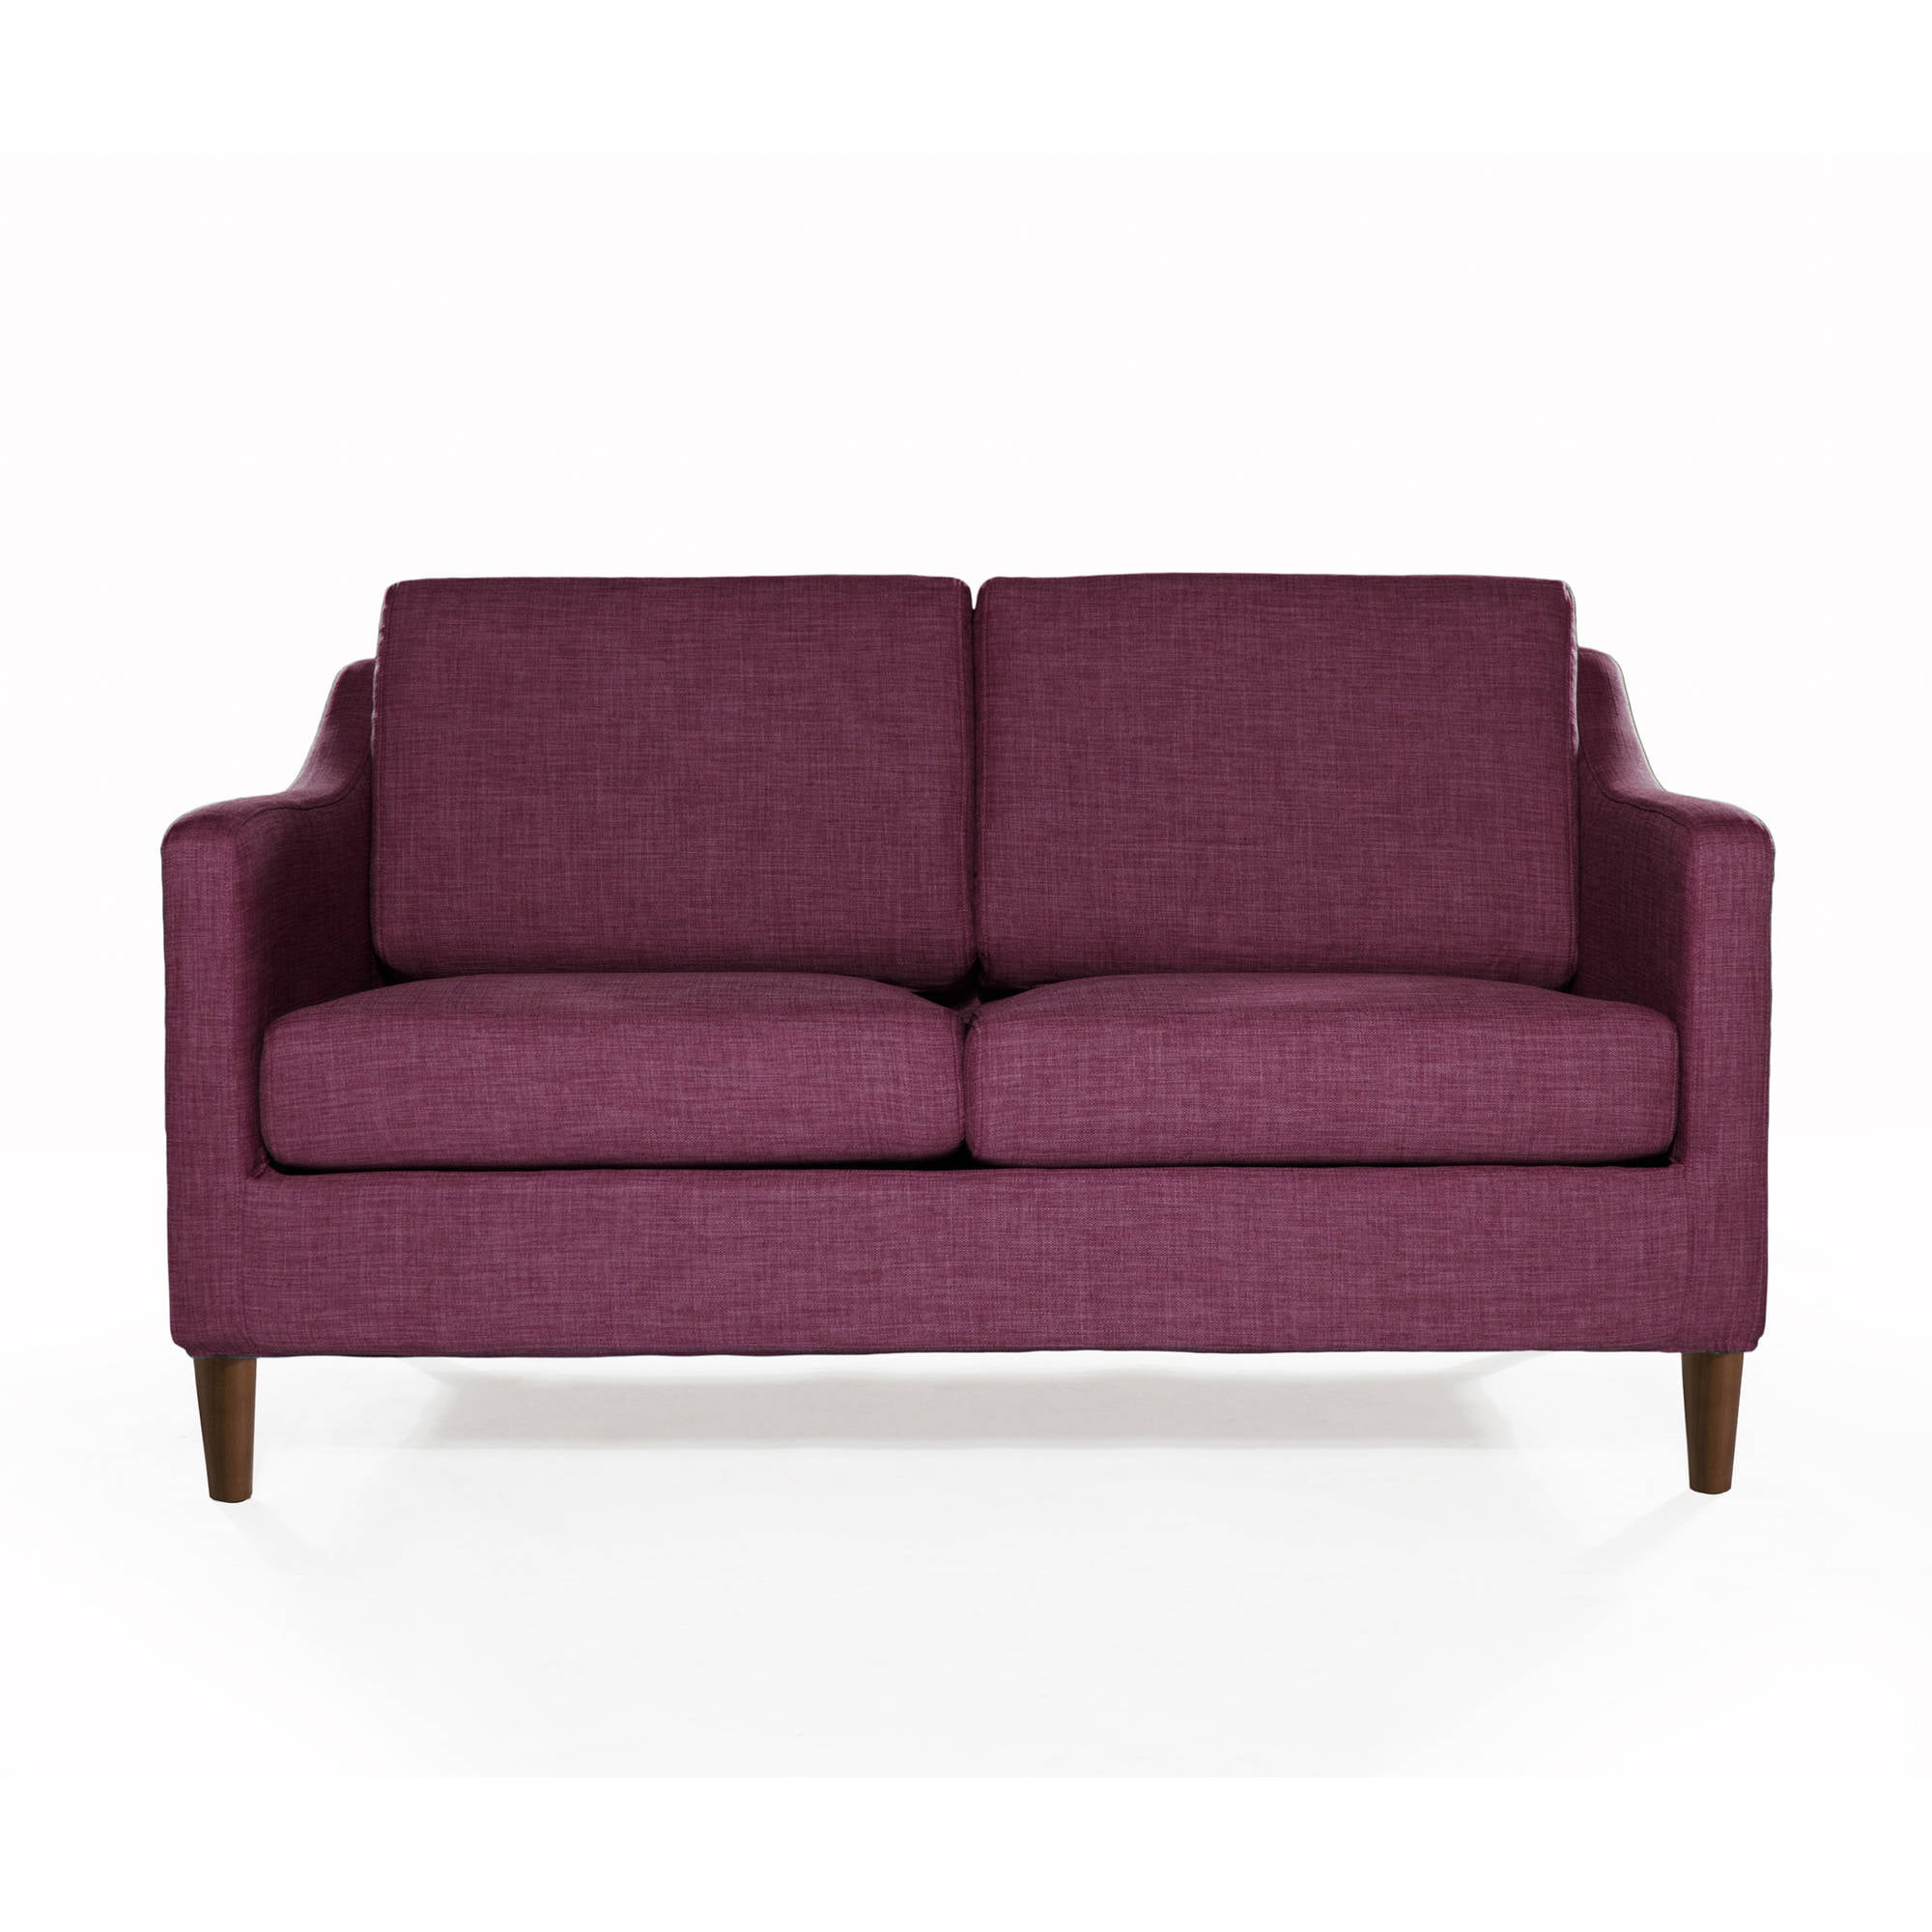 New better homes and garden griffin loveseat sofa wood legs multiple colors ebay Garden loveseat